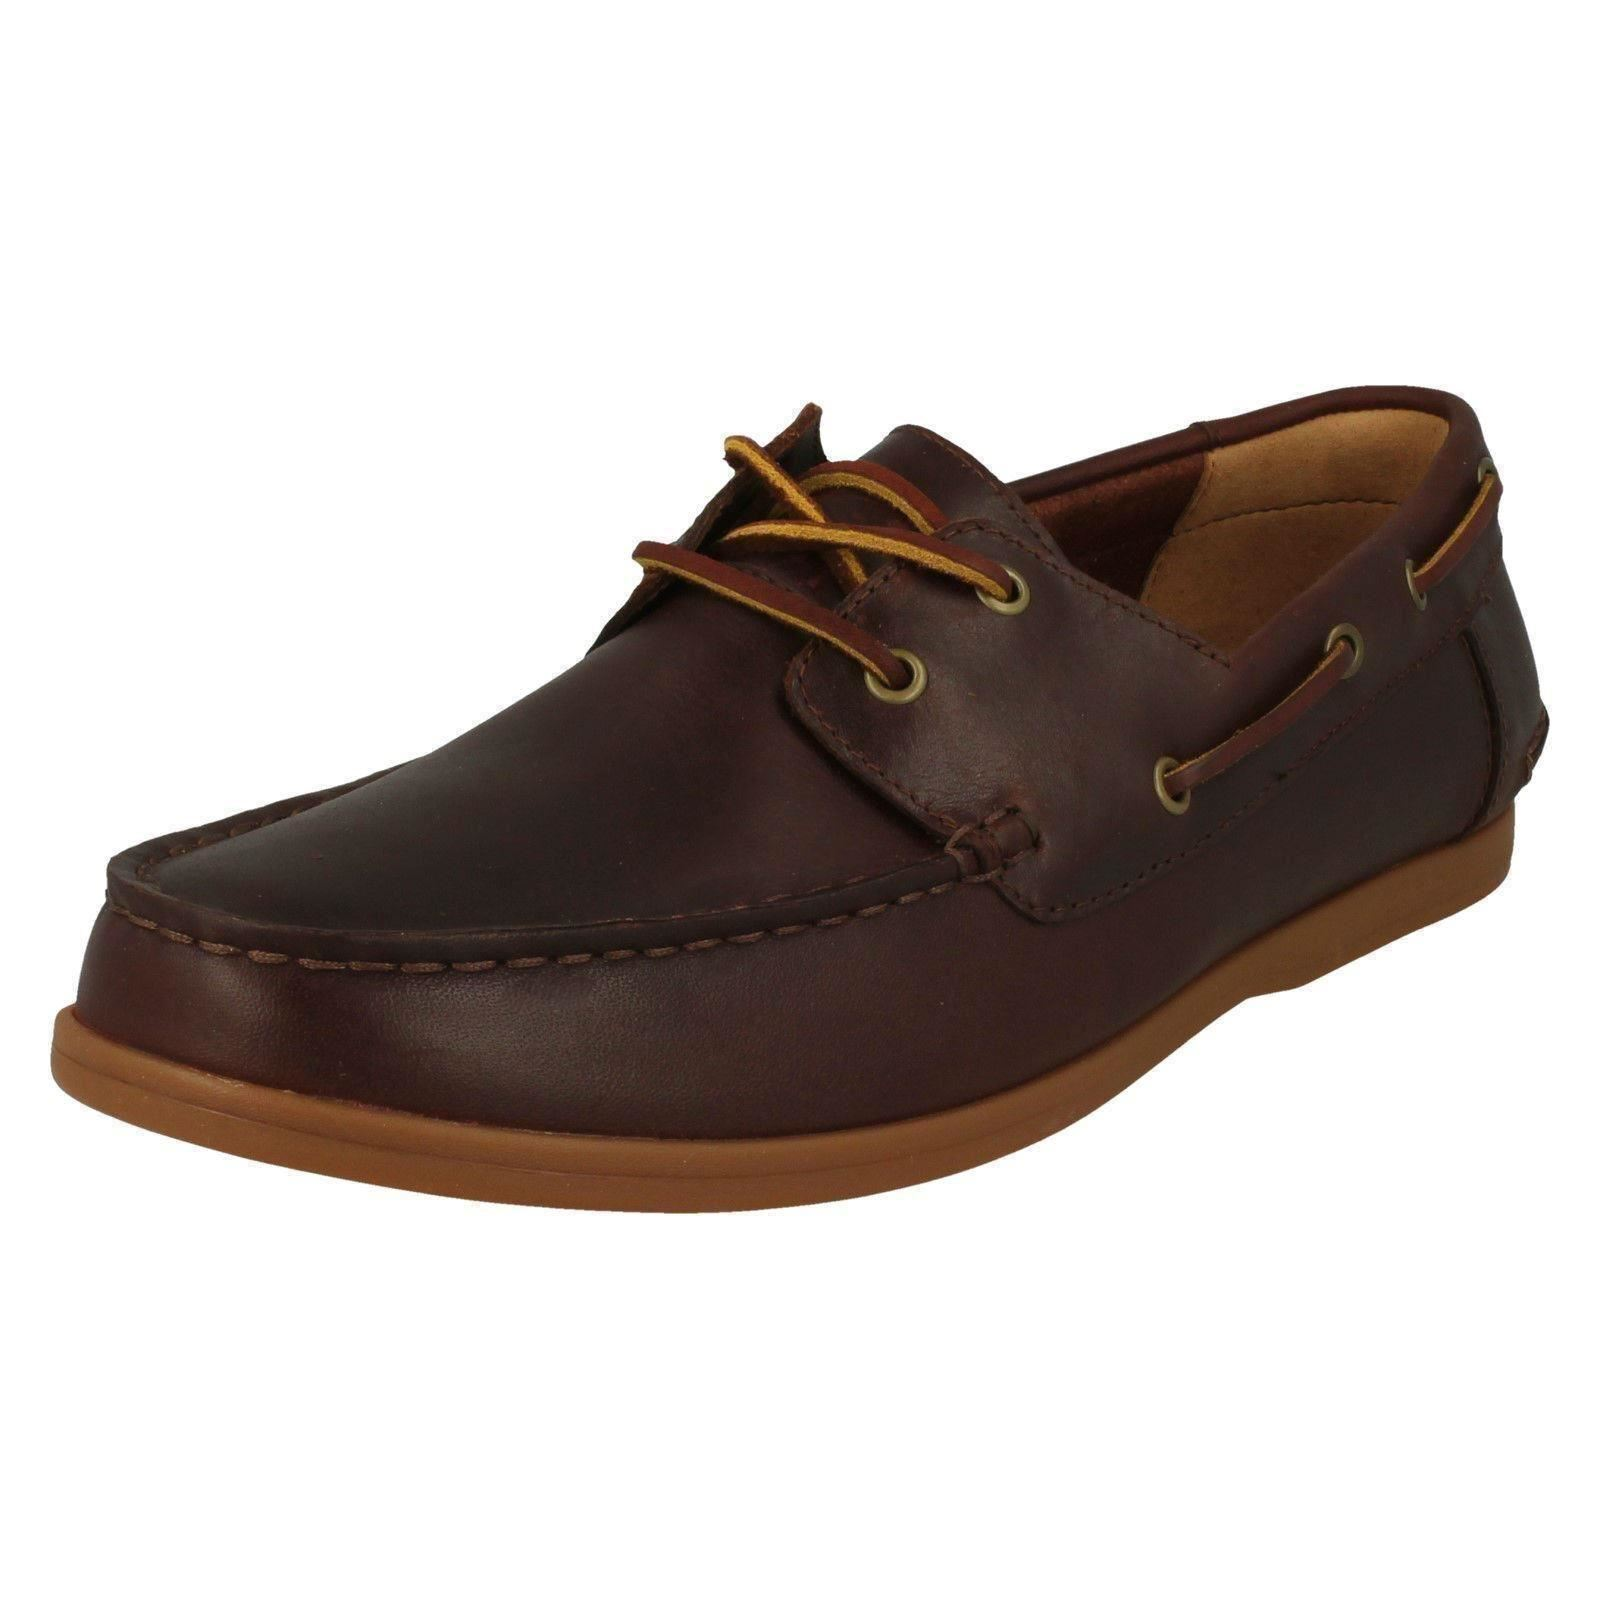 Herren Clarks Morven Sail British Tan Or Navy Schuhes Leder Lace Up Boat Schuhes Navy 300246